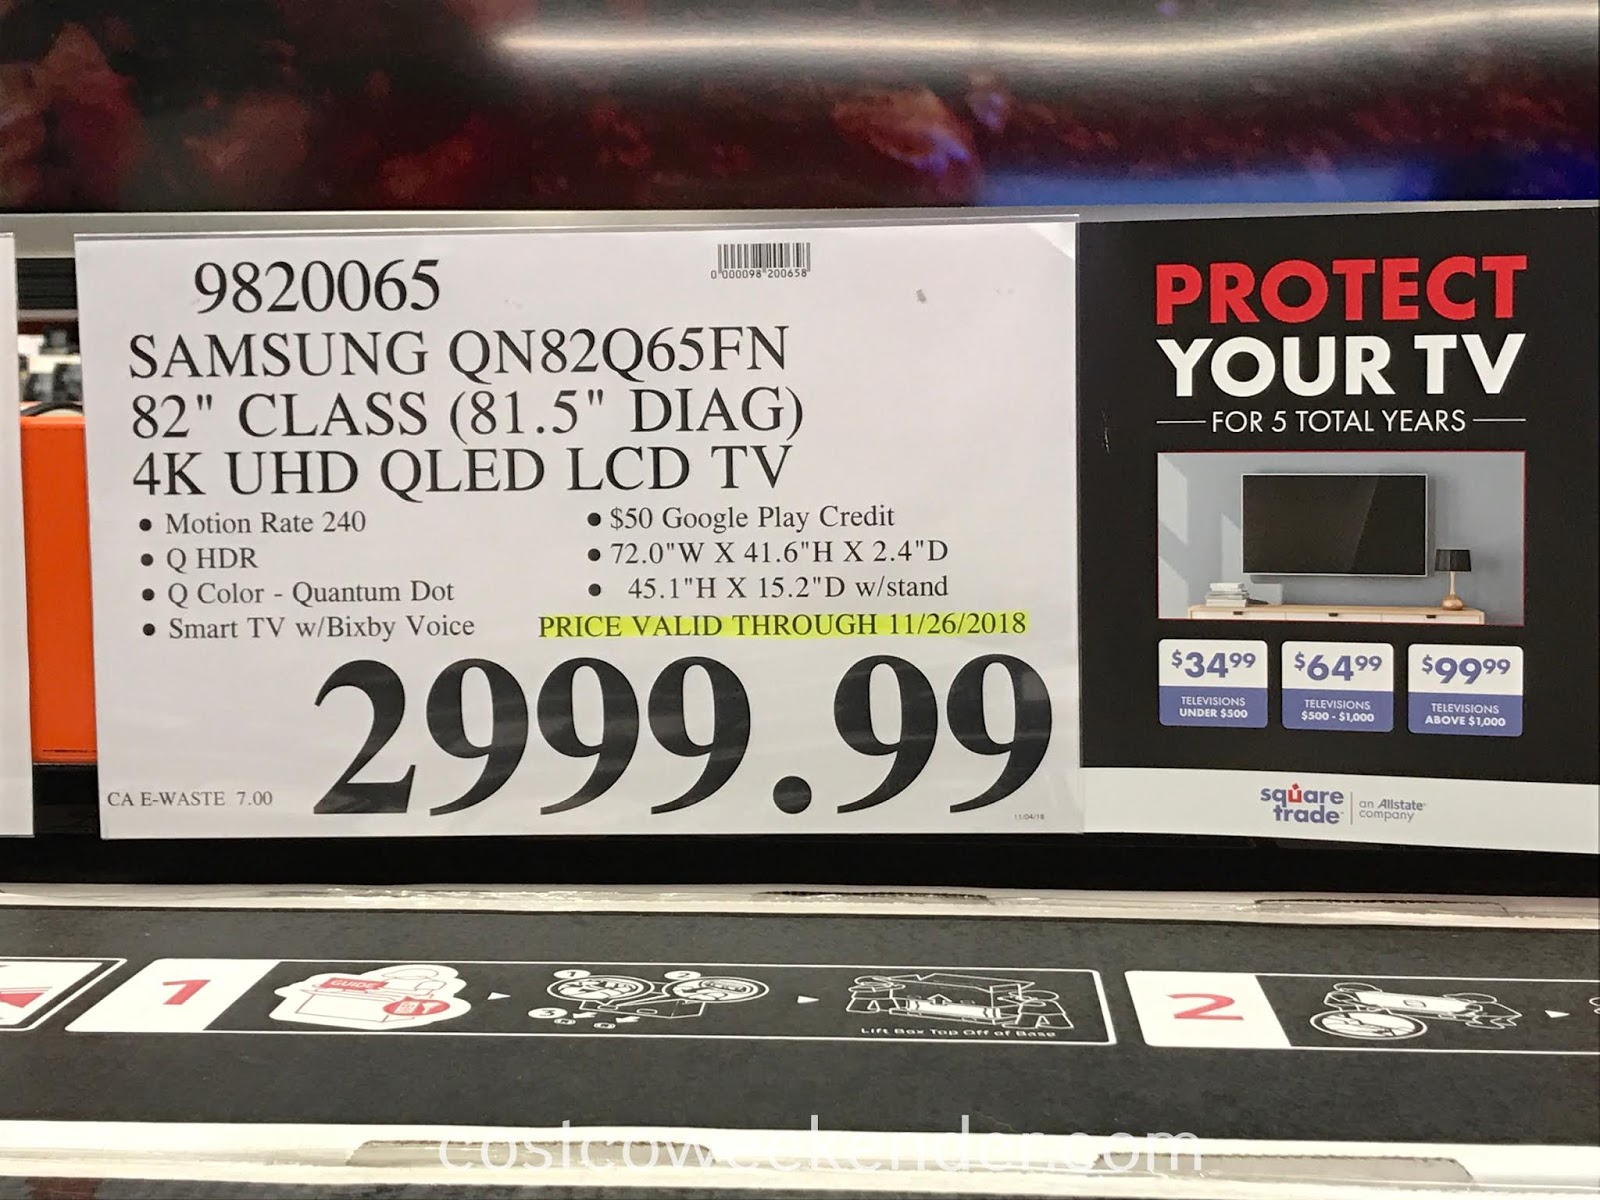 Deal for the Samsung QN82Q65FN 82-inch QLED TV at Costco